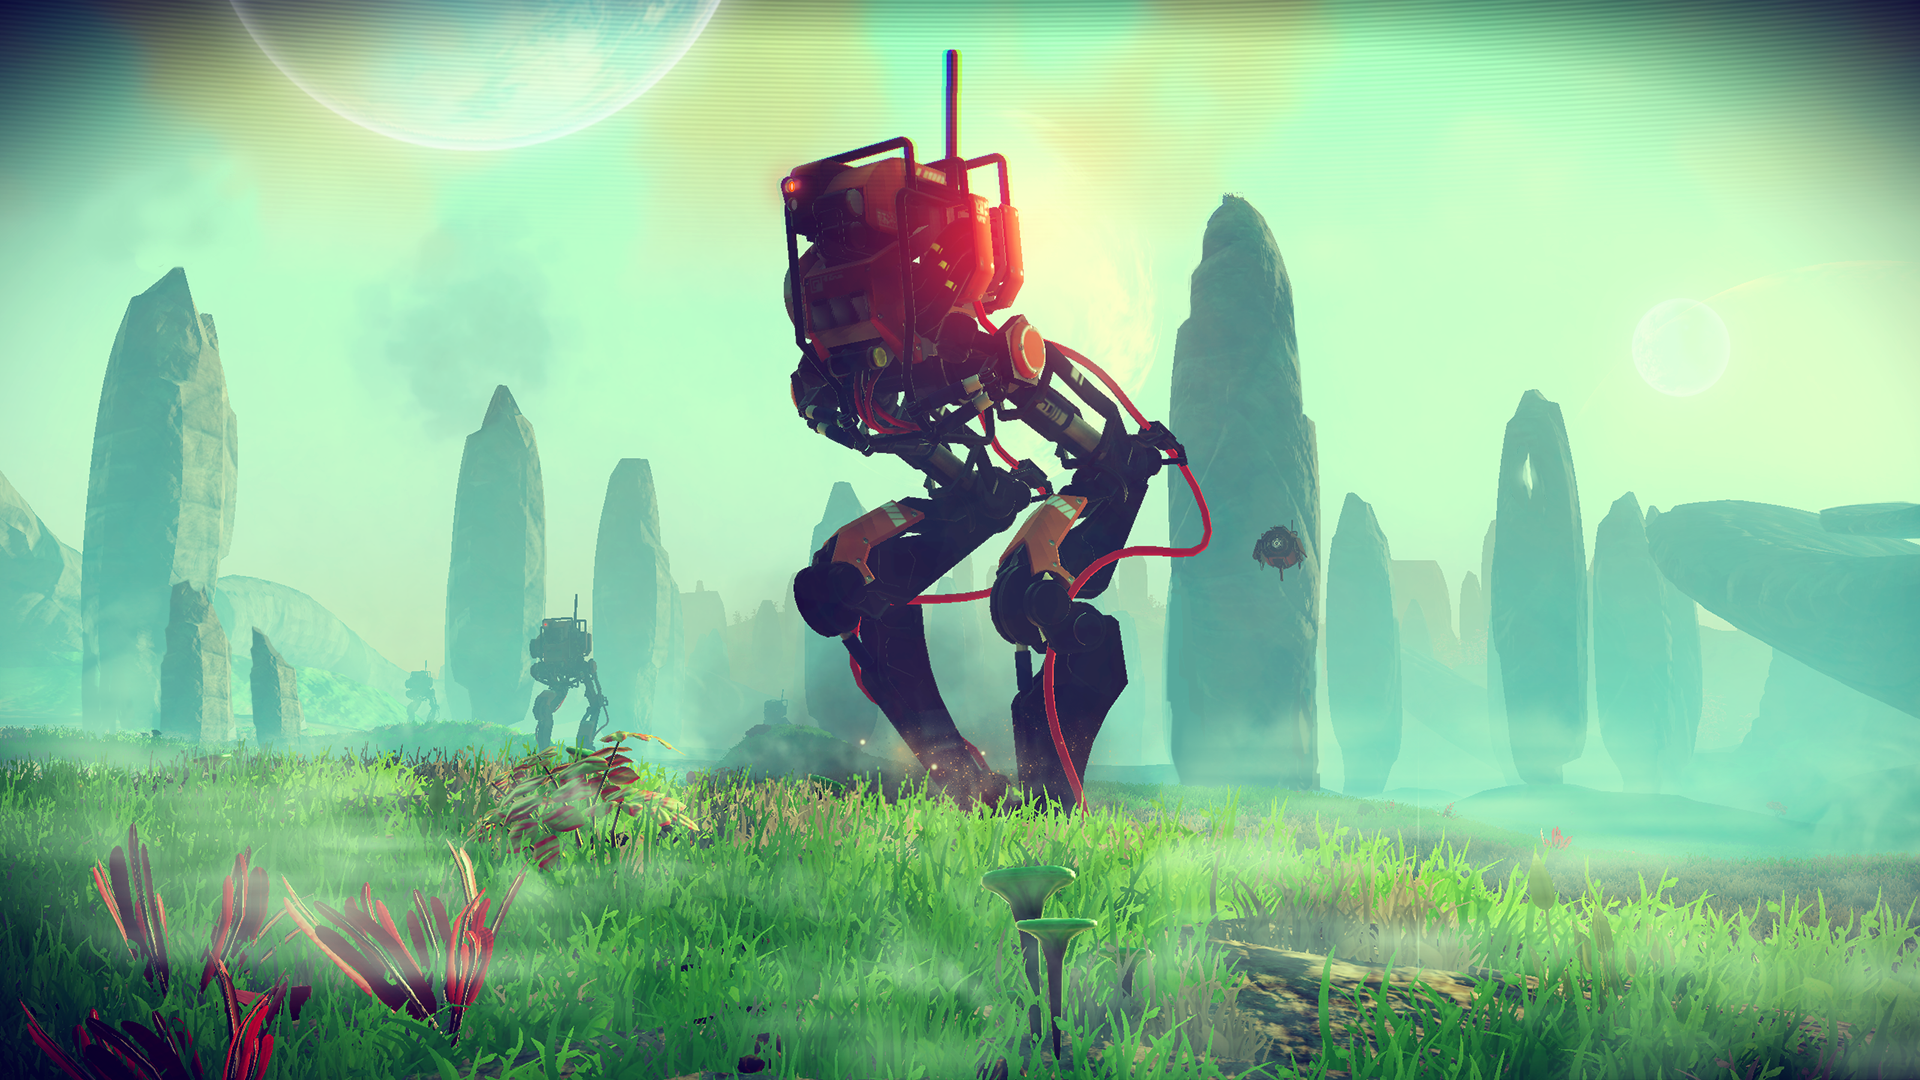 No Mans Sky Dev Speaks Out On YouTube Takedowns OvalWalker